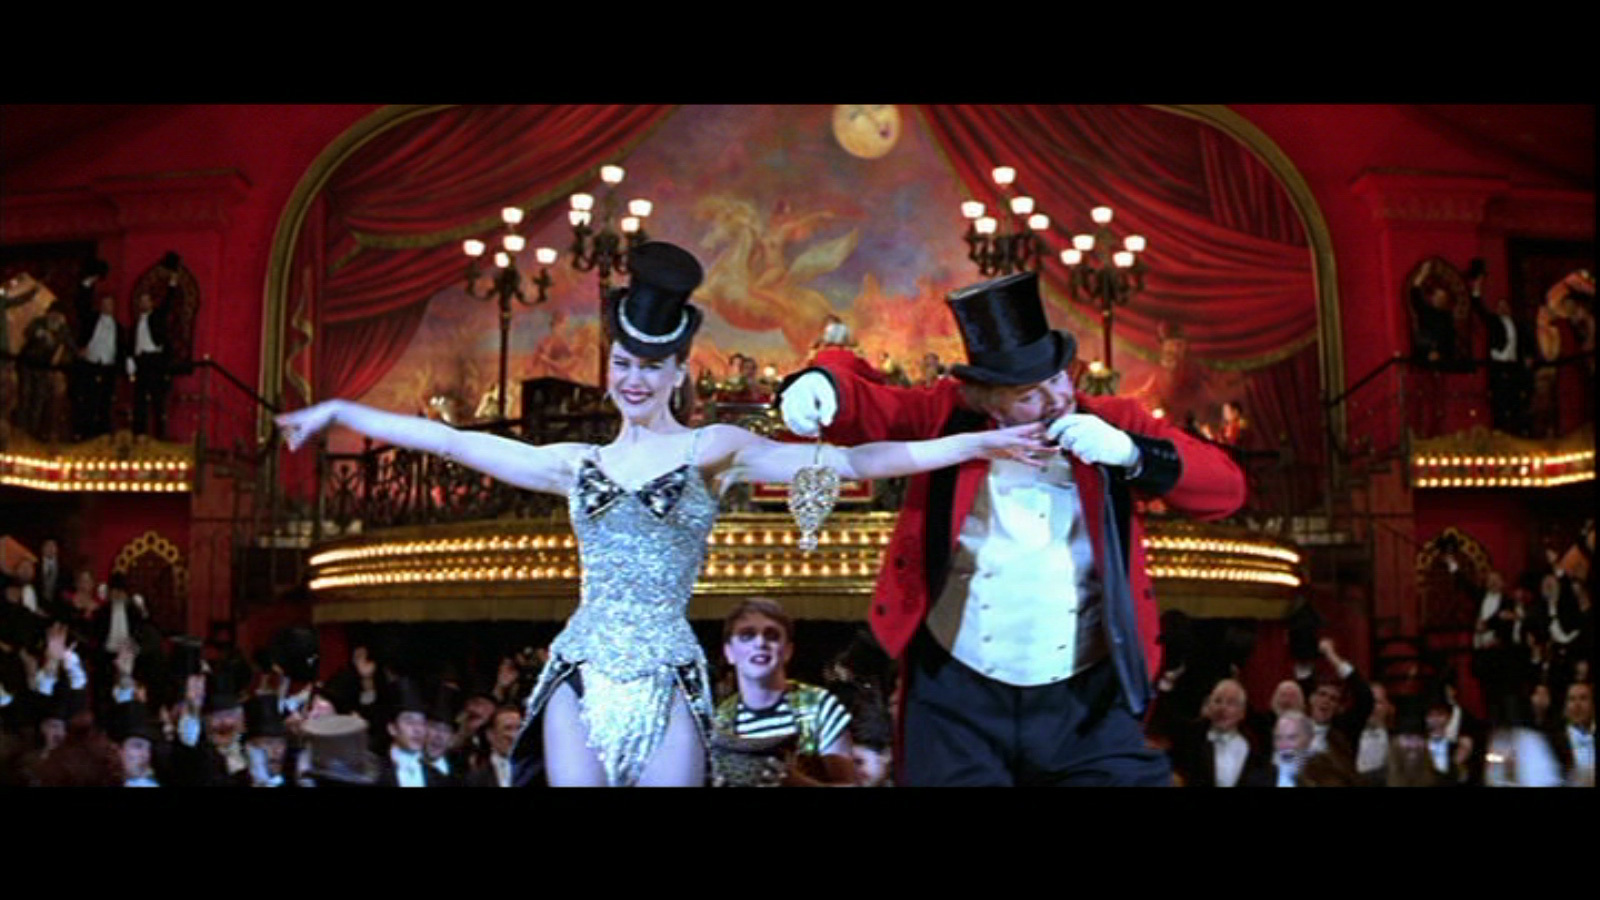 a musical analysis of moulin rouge Moulin rouge analysis a low-profile poet, who falls in love with the star courtesan of the moulin rouge as a musical film.